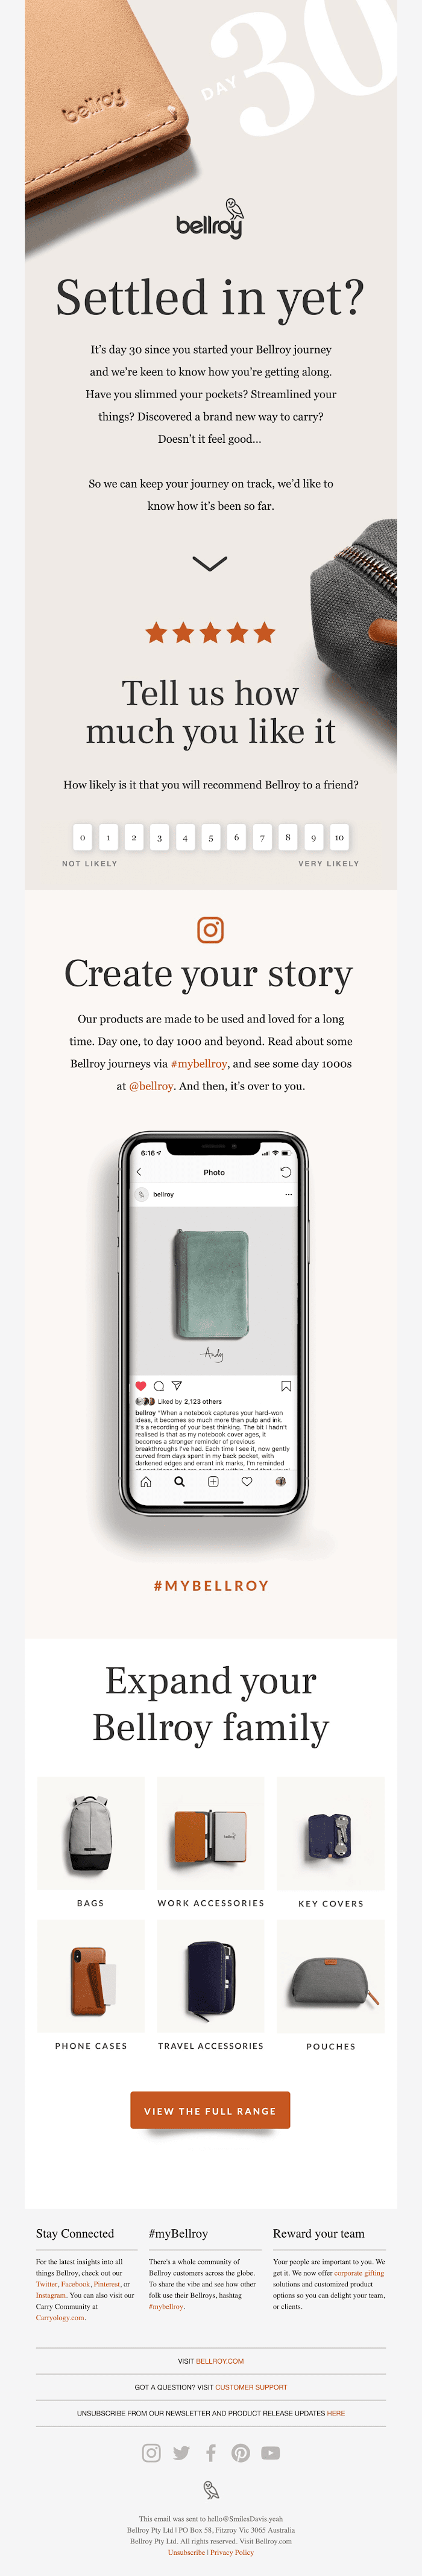 Bellroy's post purchase follow up email.